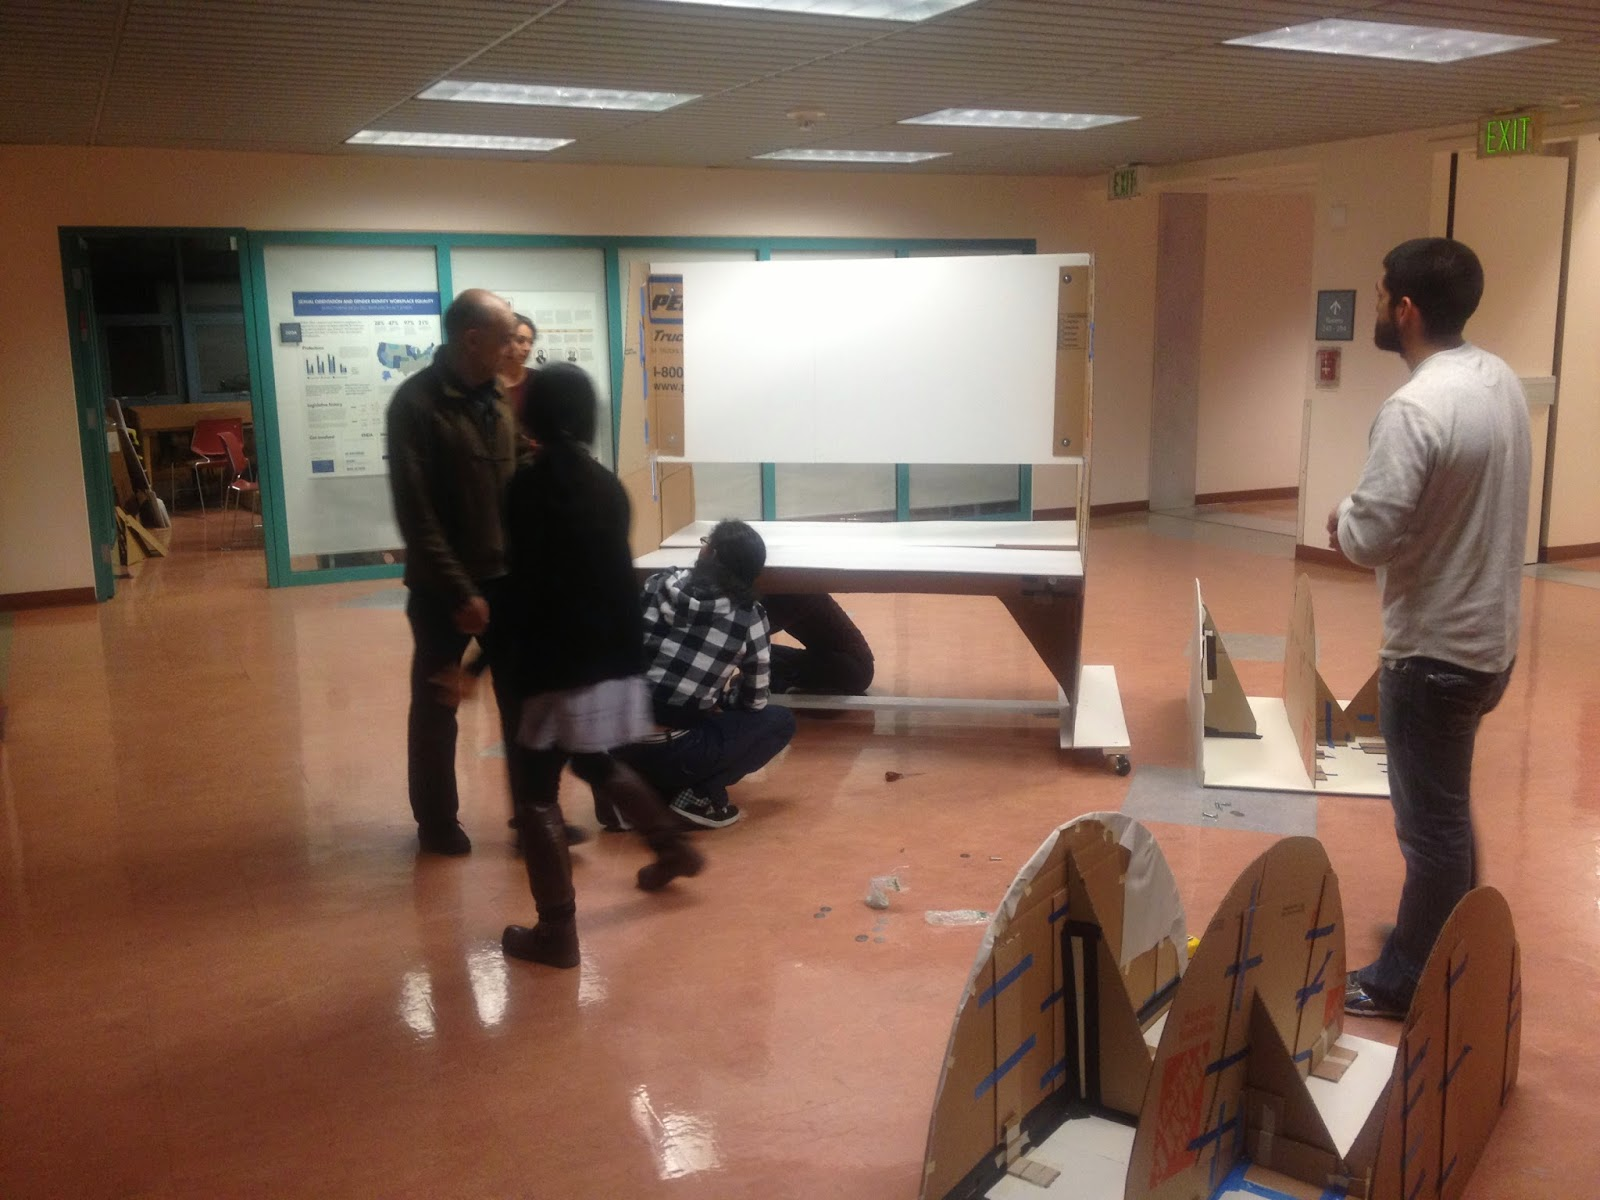 A group of students are assembling a cardboard exhibit display model. The instructor walks over to inspect on the progress.